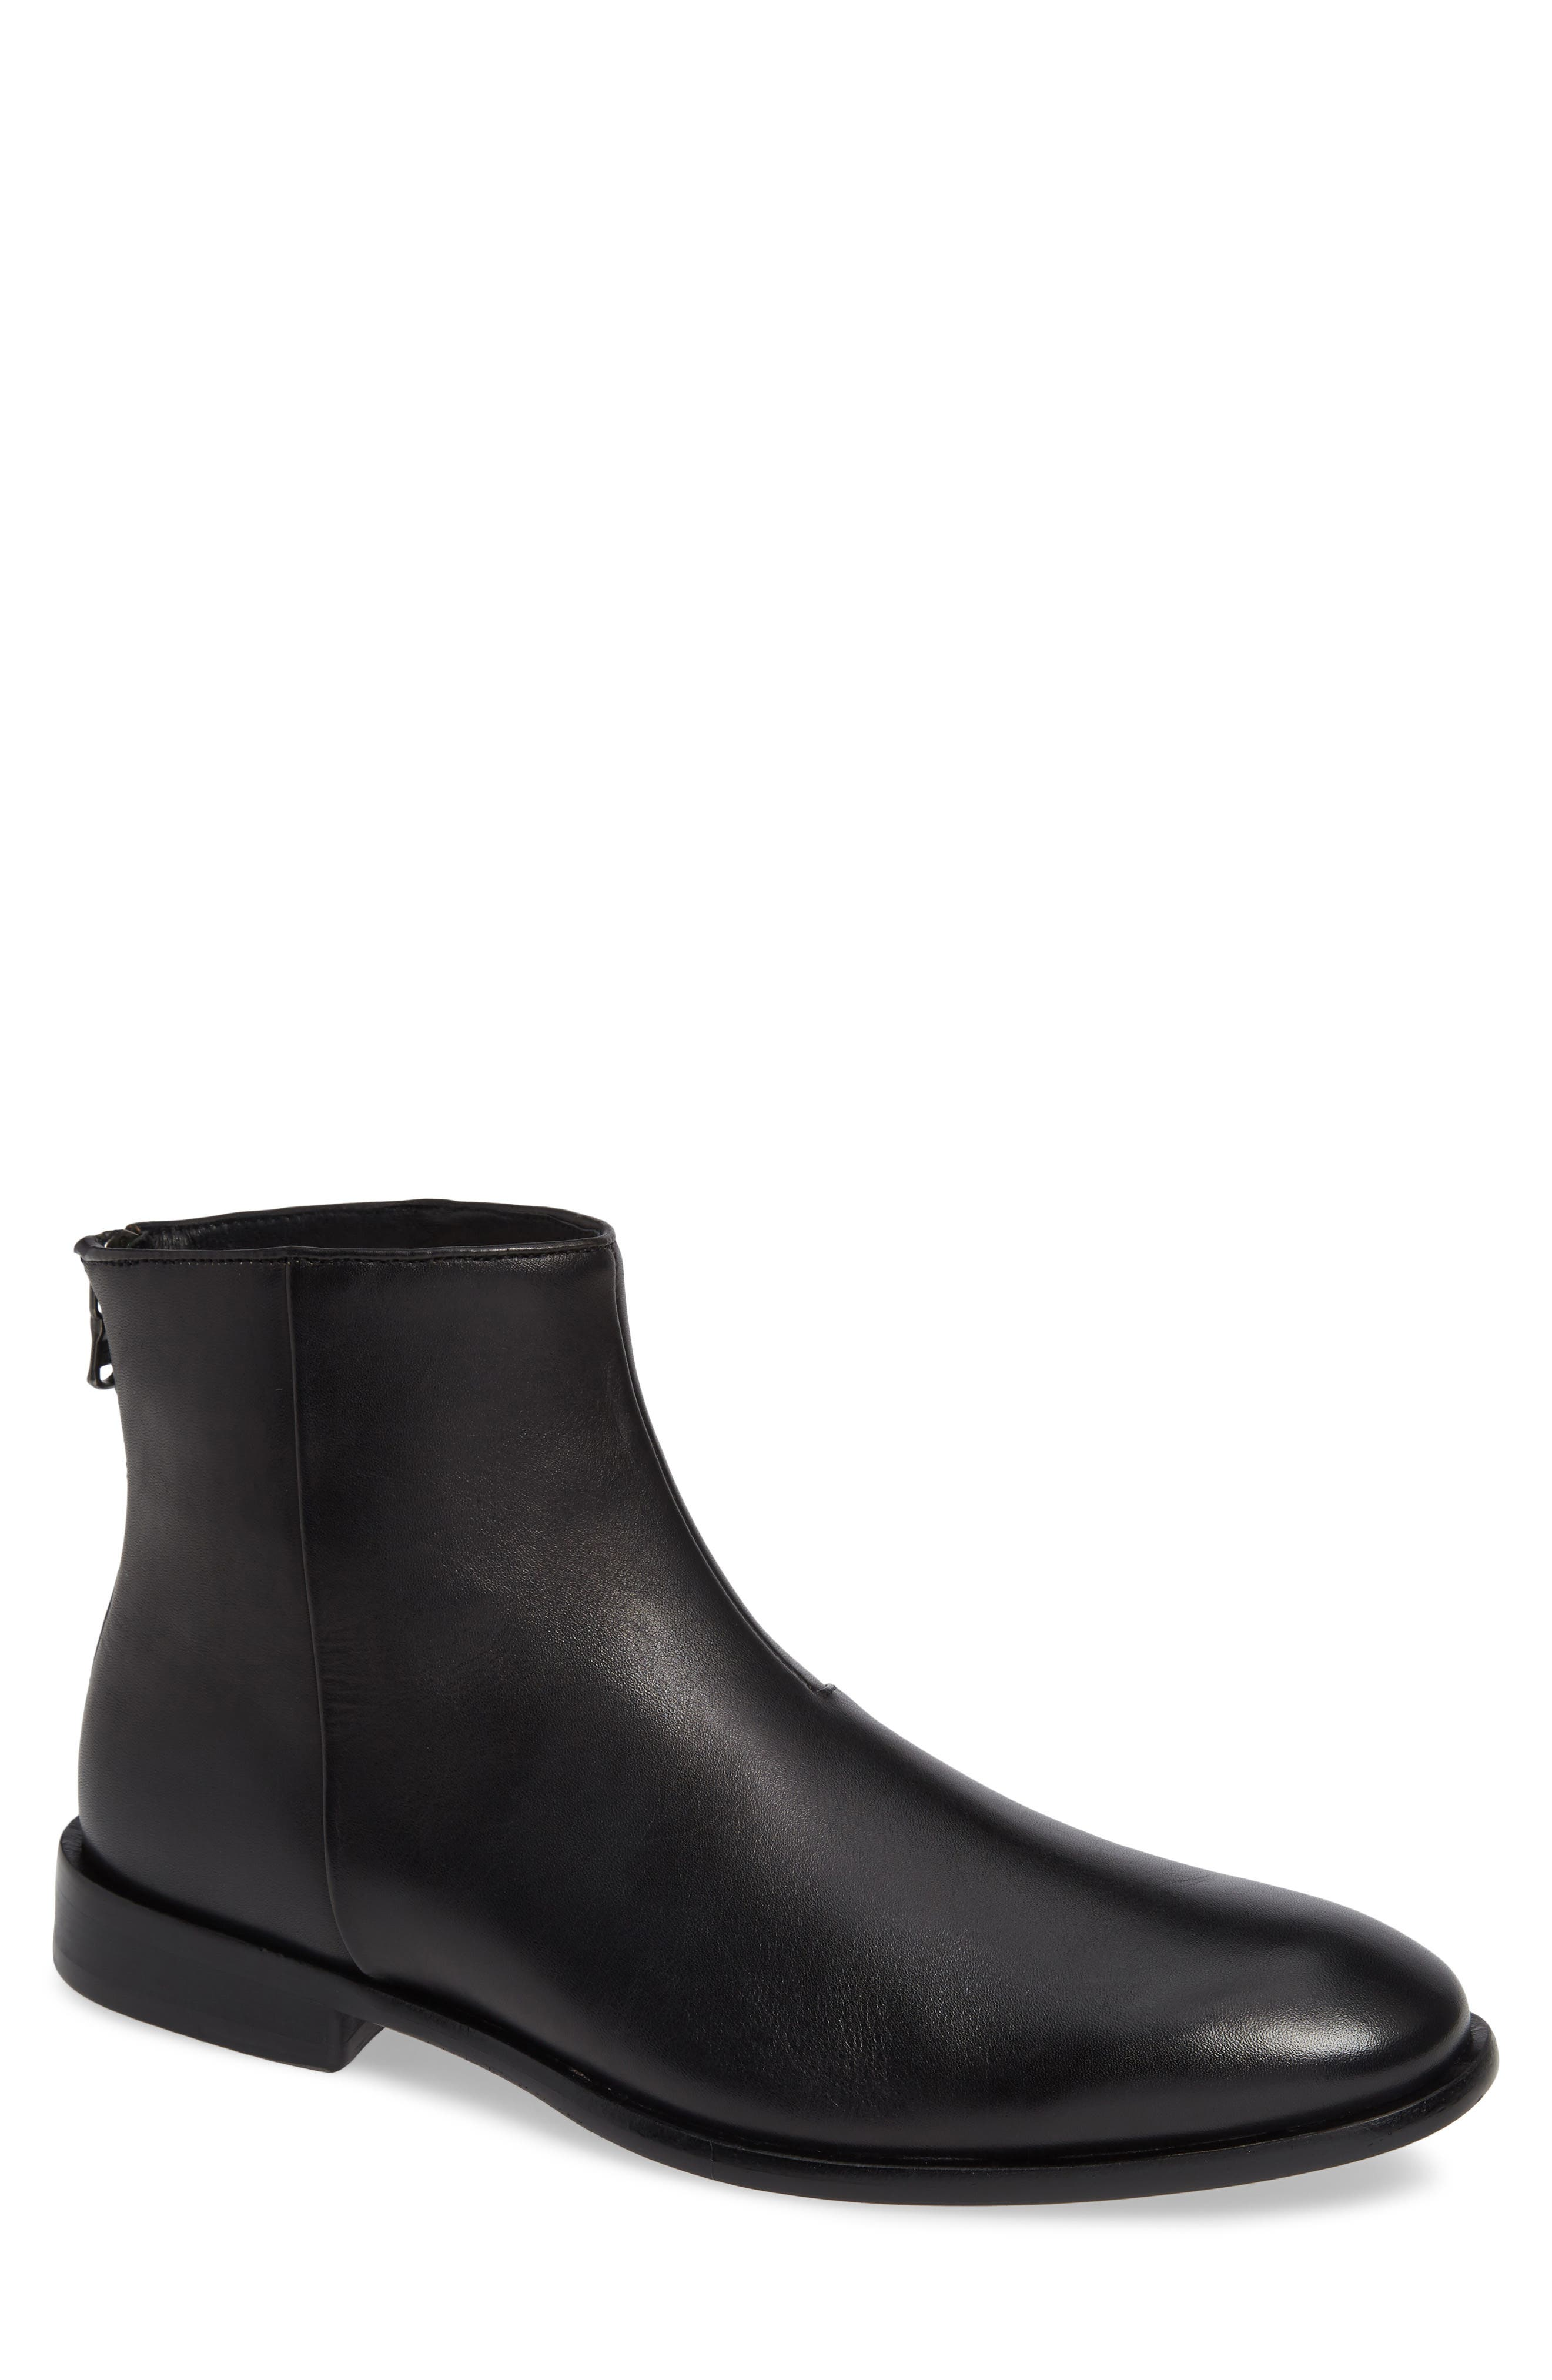 NYC Back Zip Boot,                             Main thumbnail 1, color,                             BLACK LEATHER